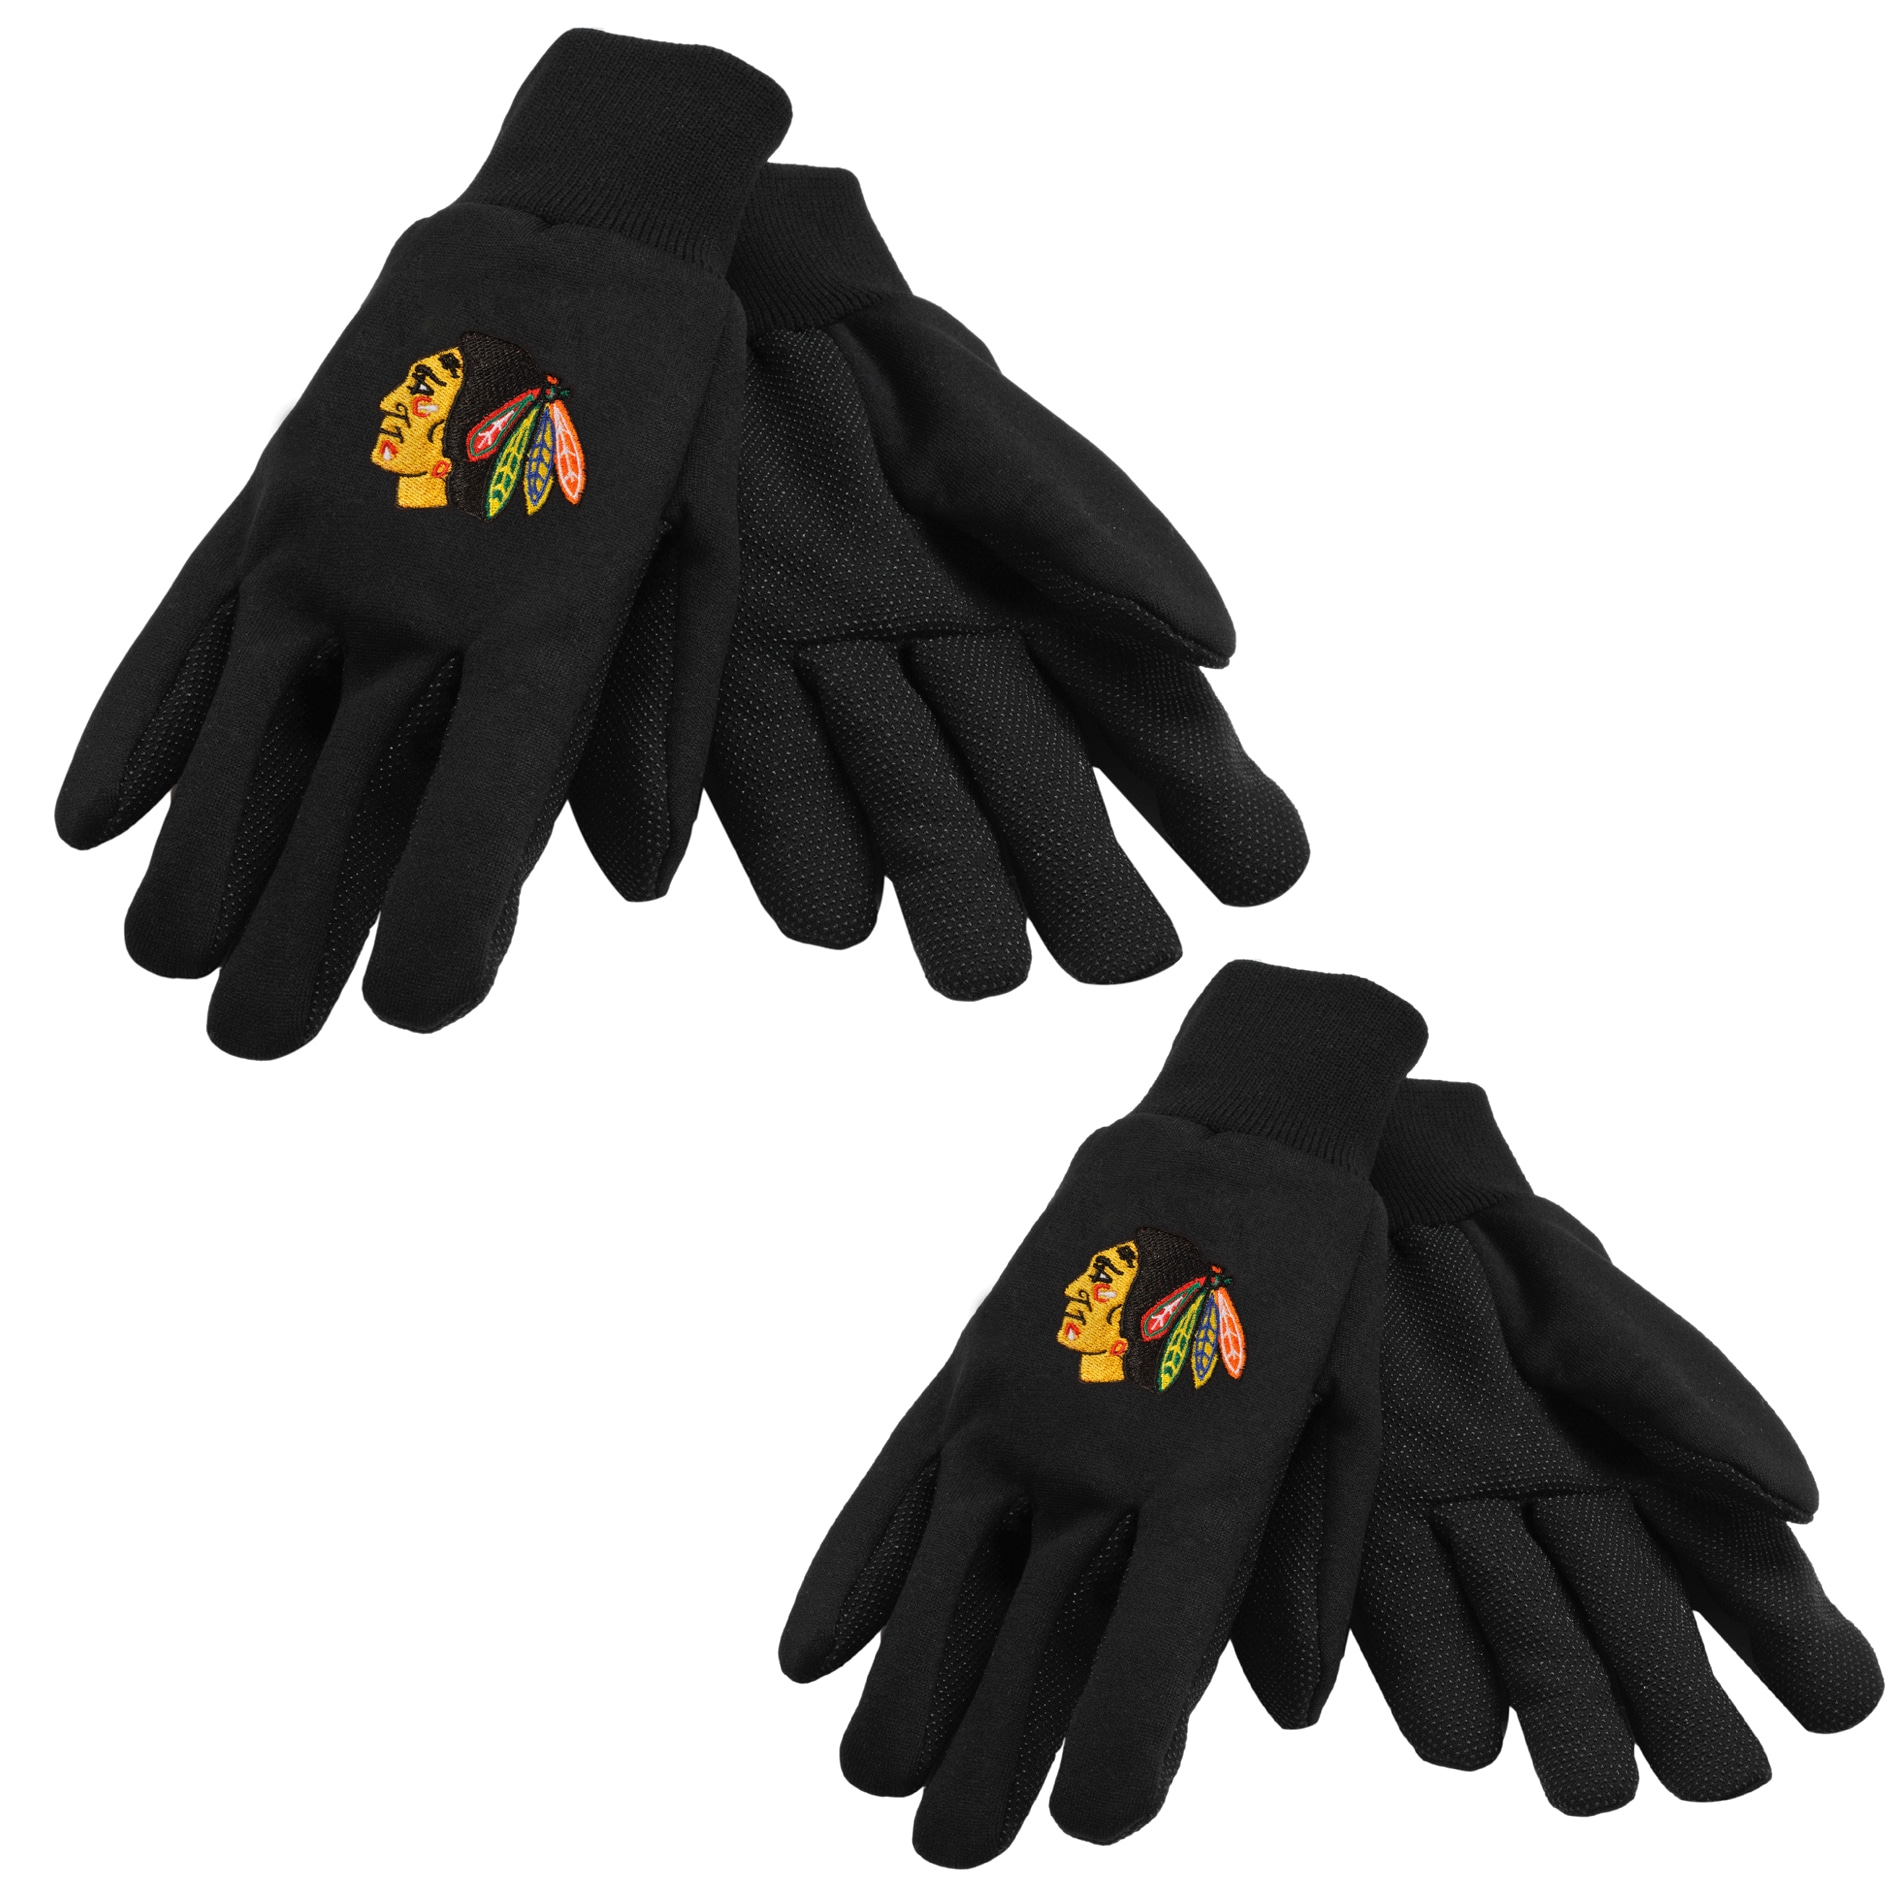 Chicago Blackhawks Two-tone Gloves (Set of 2 Pair)